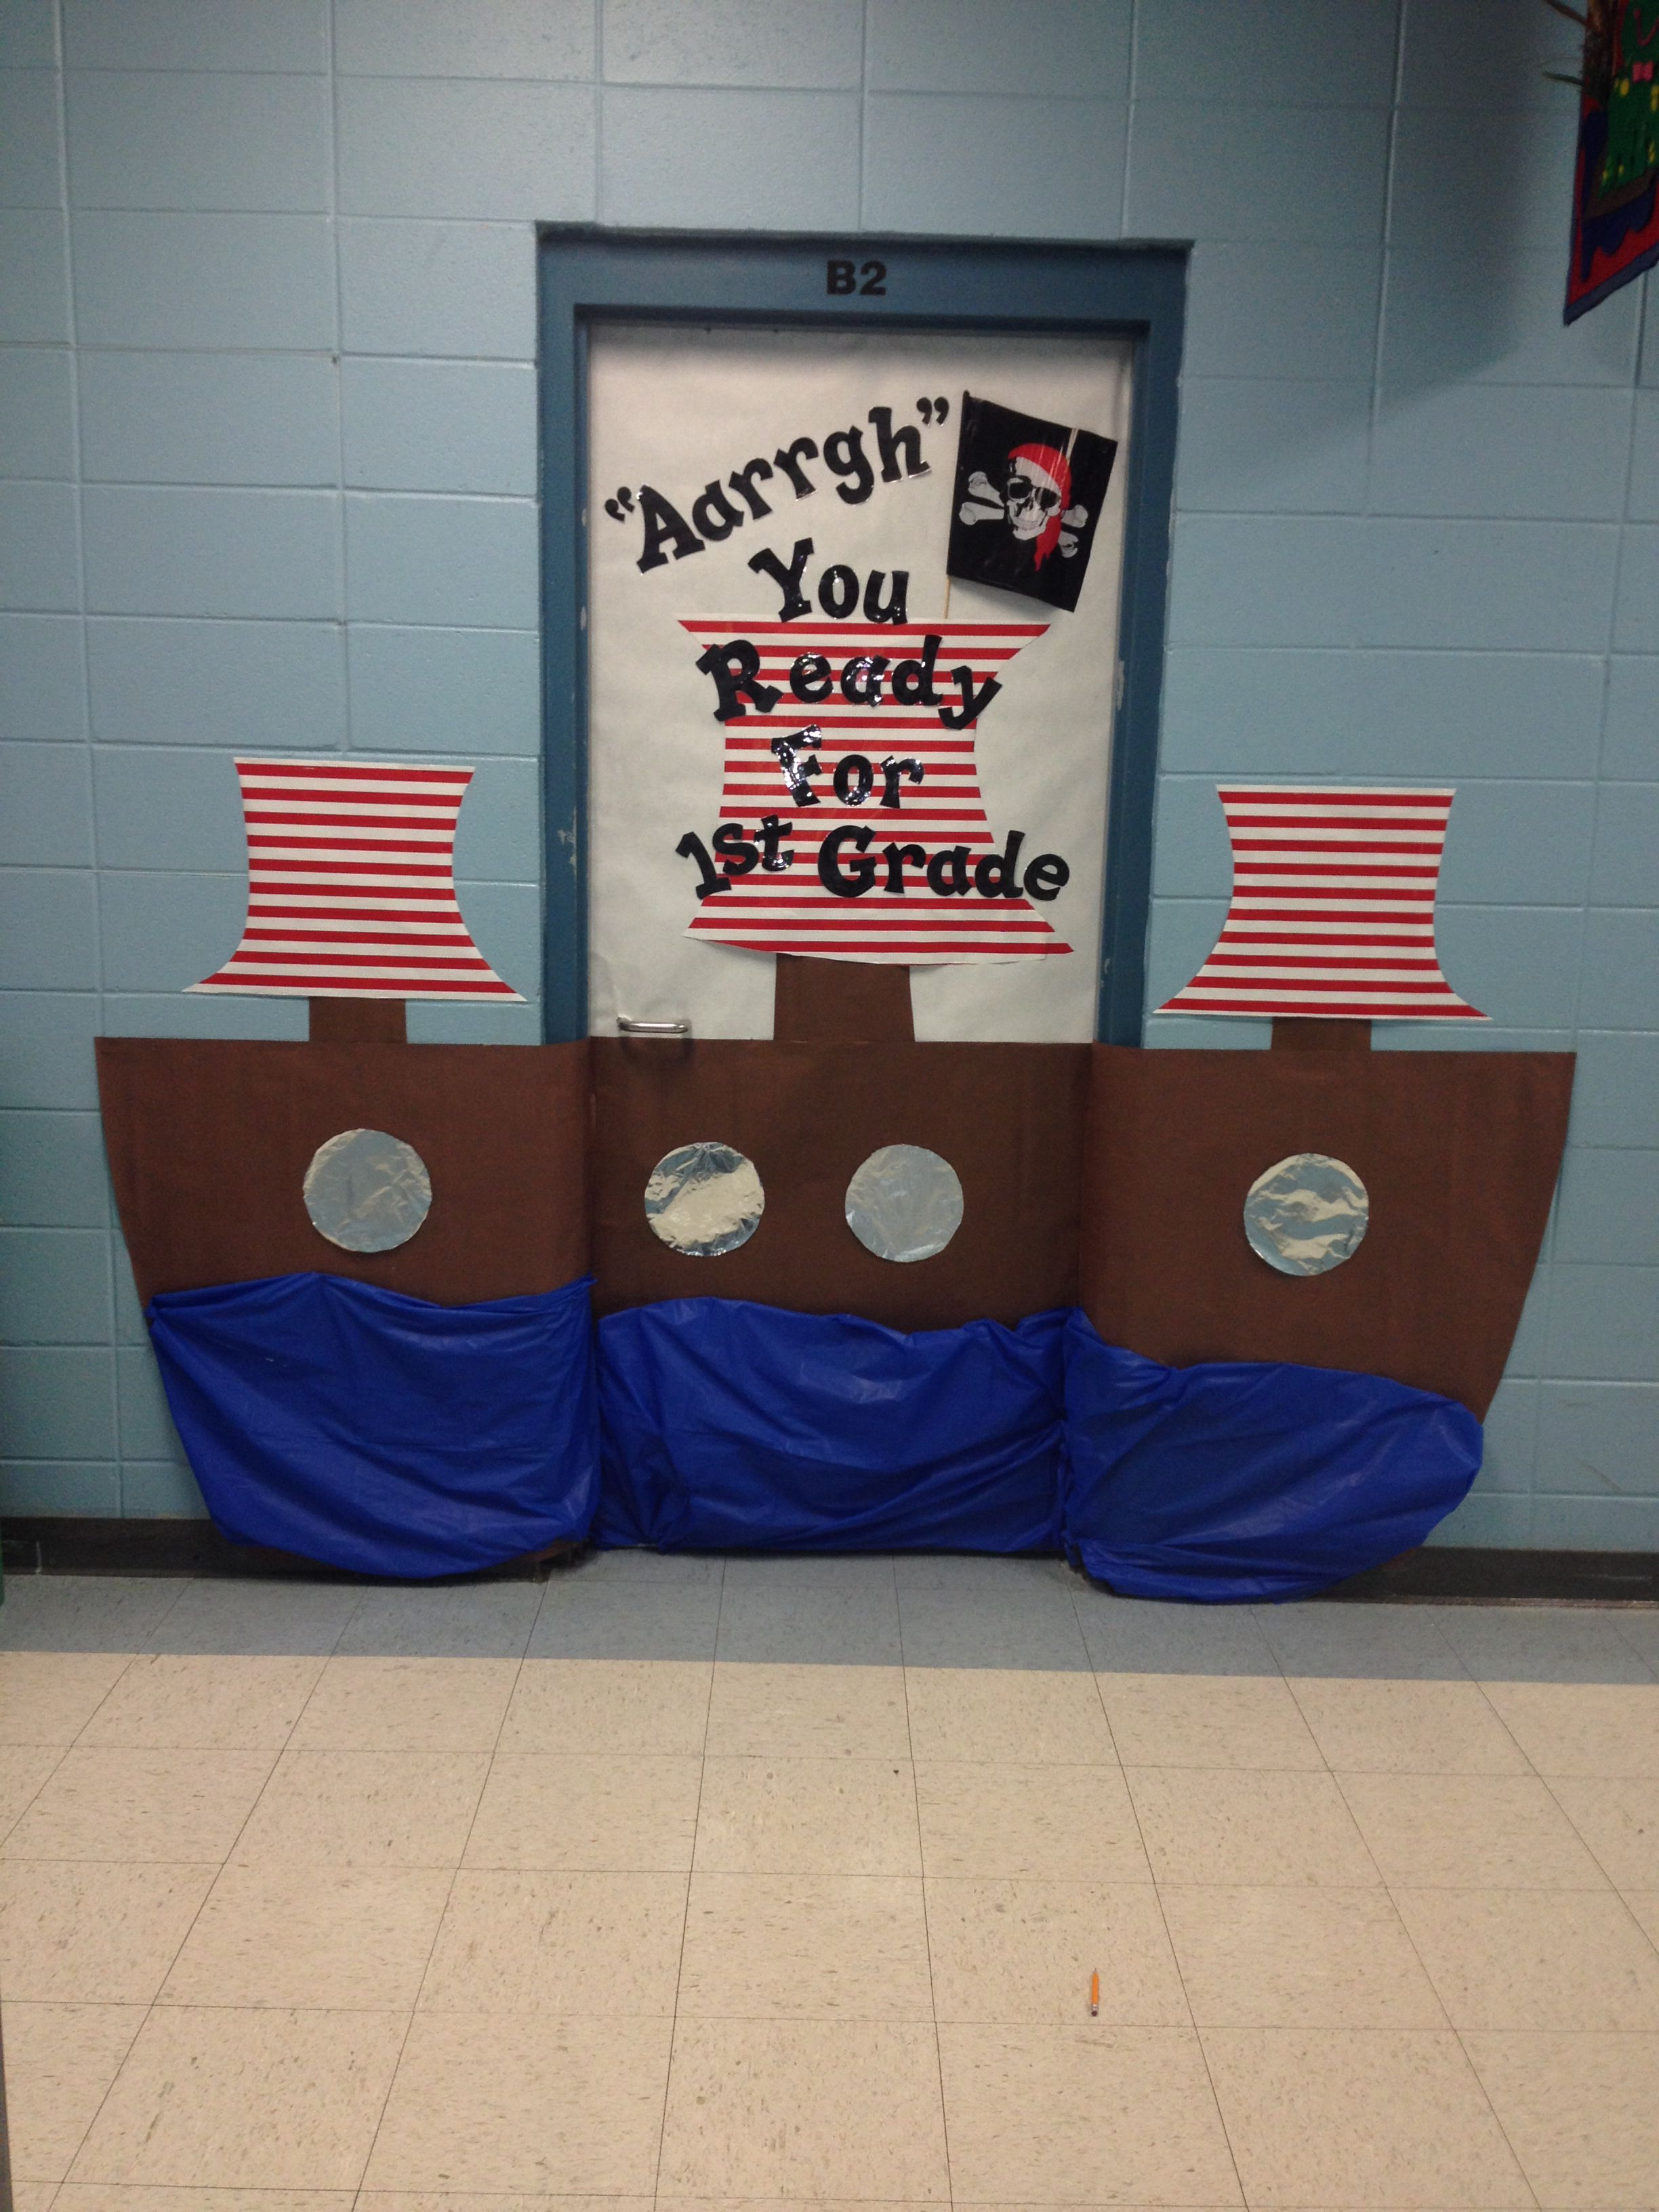 20 Pirate Theme Classroom Pictures And Ideas On Meta Networks